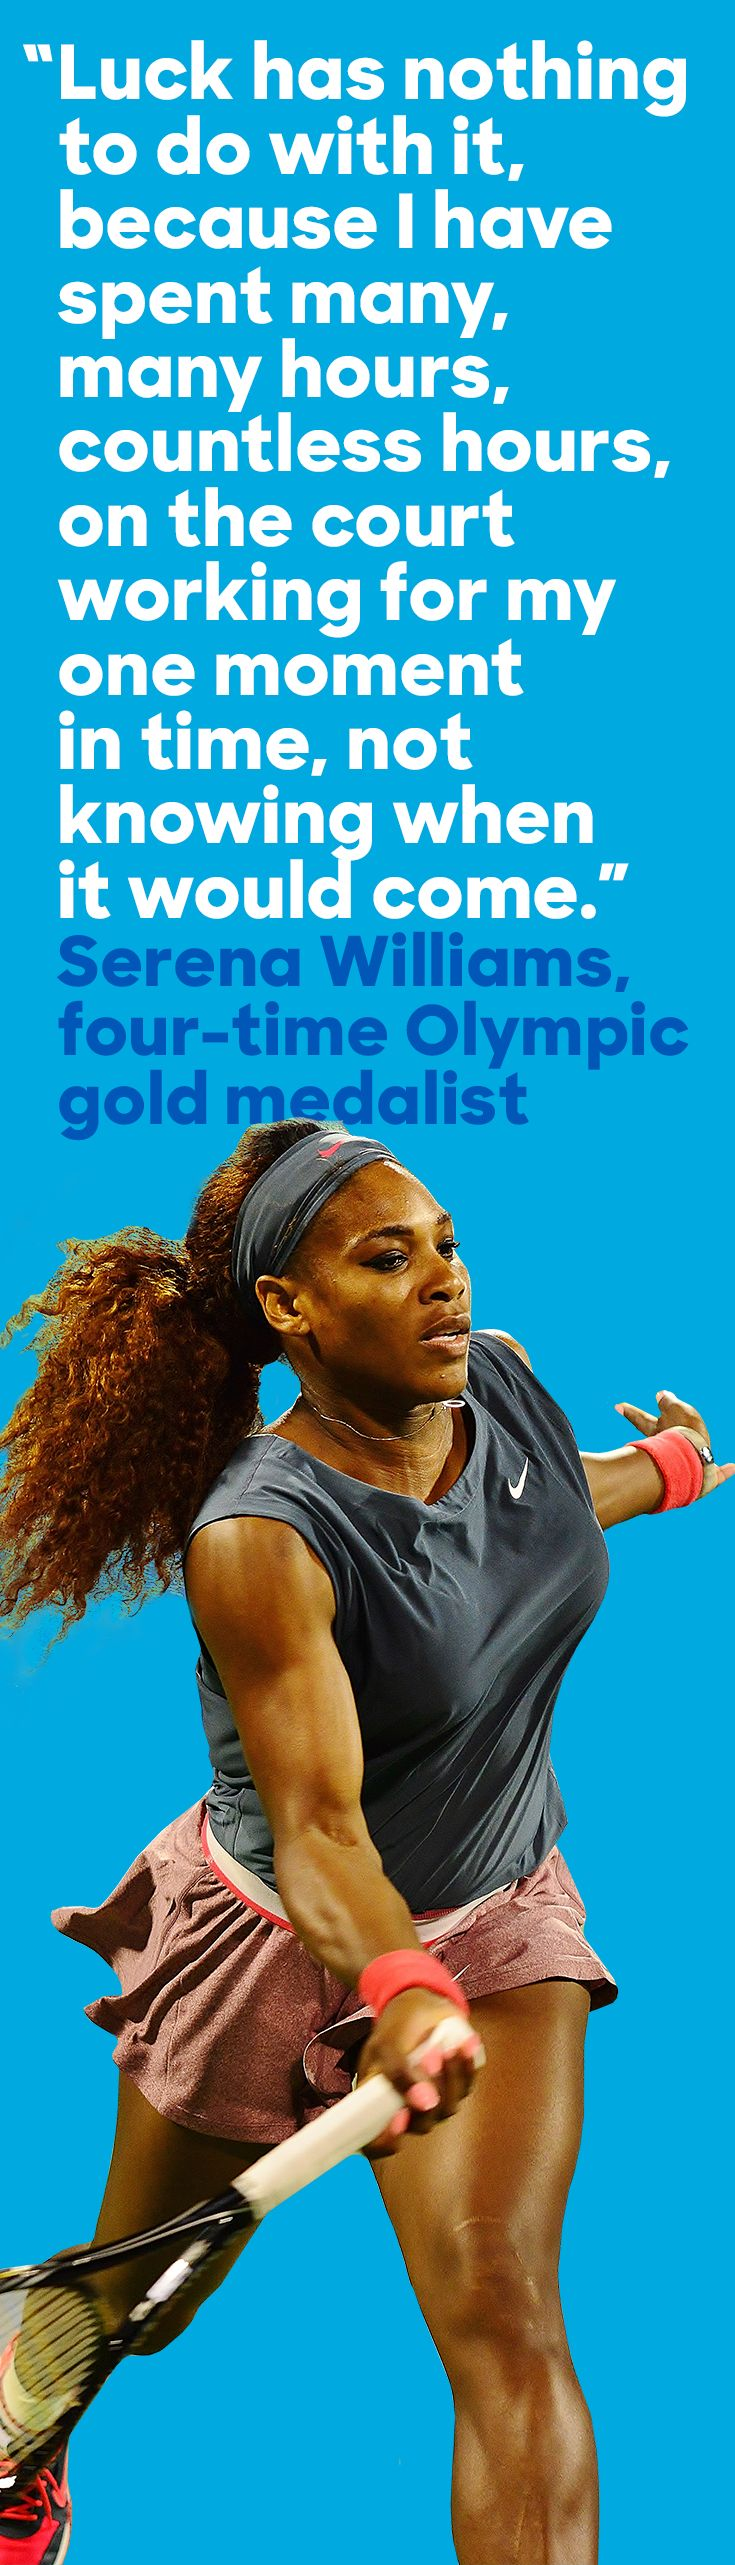 Four gold medals and counting: Today, Serena Williams hits the Olympic court in Rio to add to her collection.